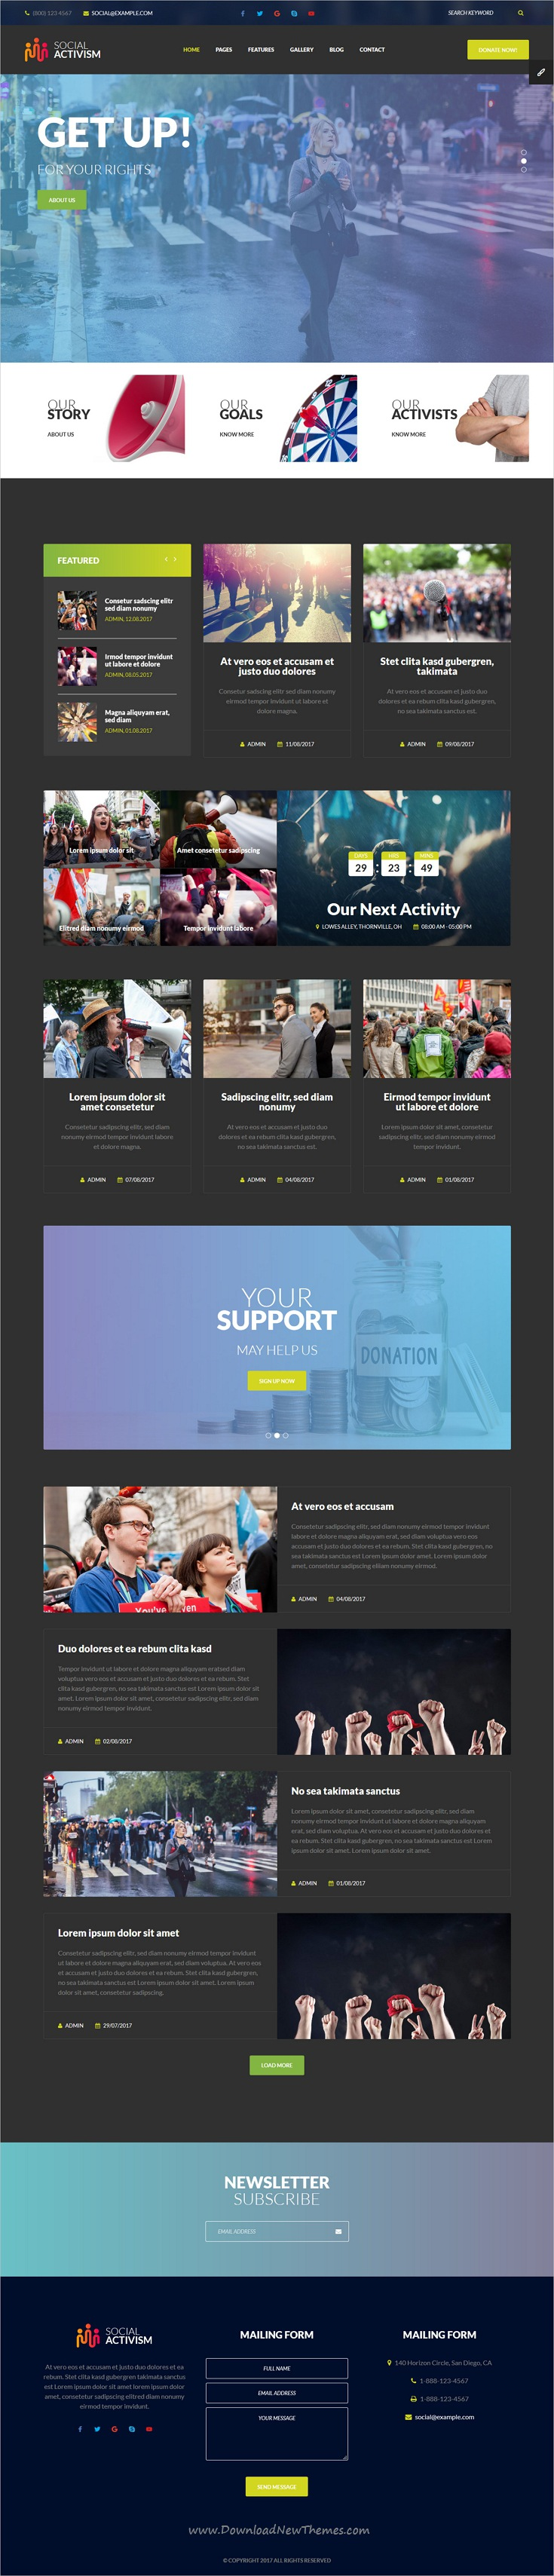 Social Activism - Non-Government Organization HTML Template with ...